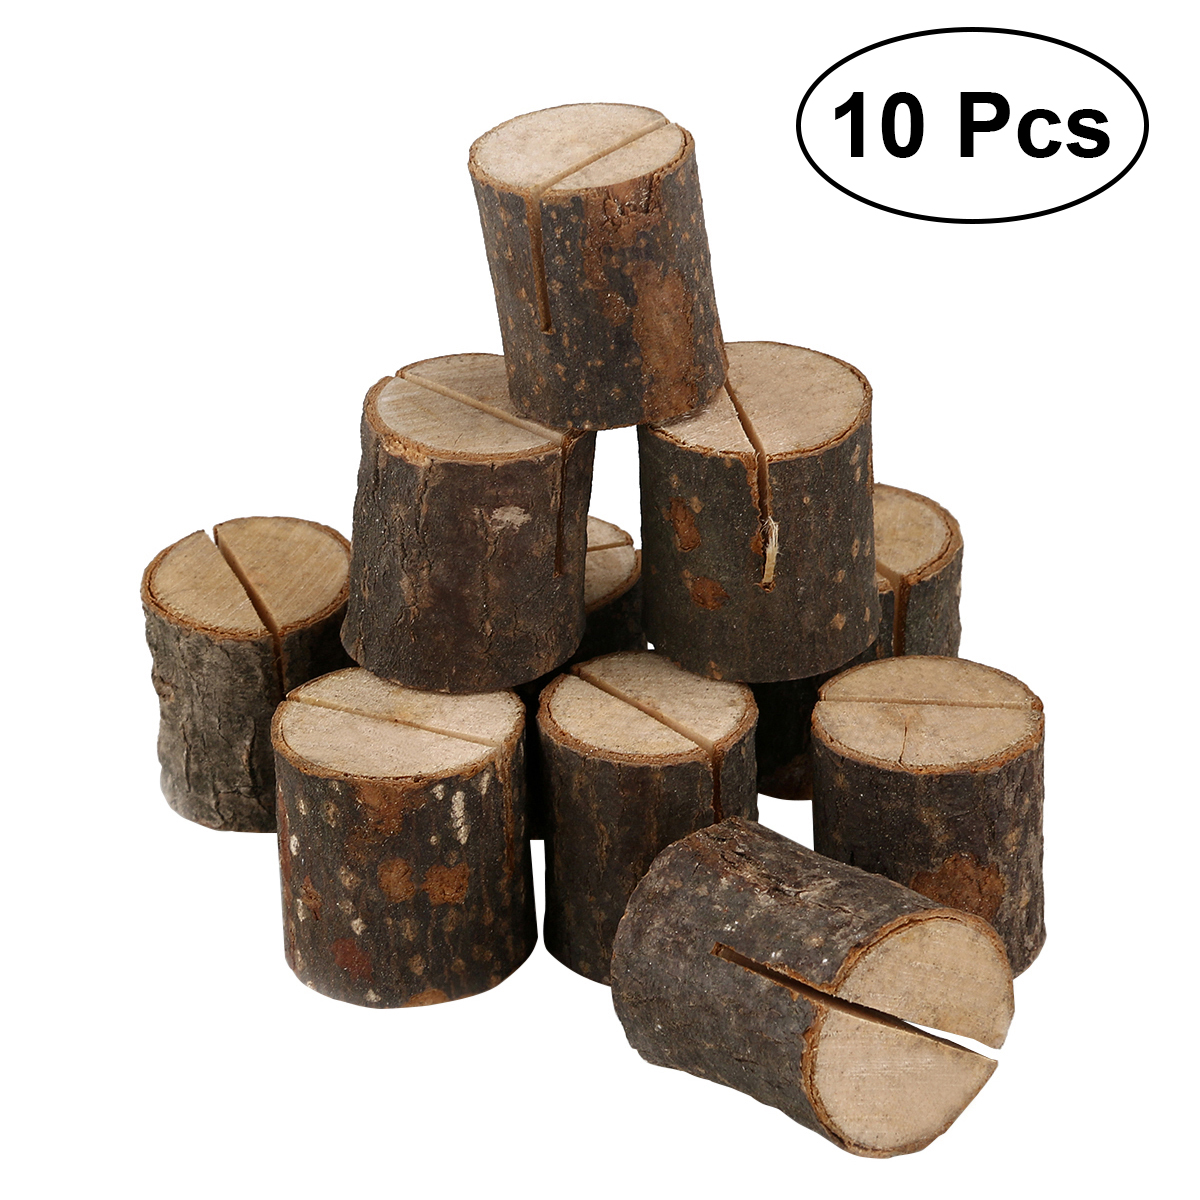 TINKSKY 10pcs Wooden Wedding Name Place Card Holders Home Decor